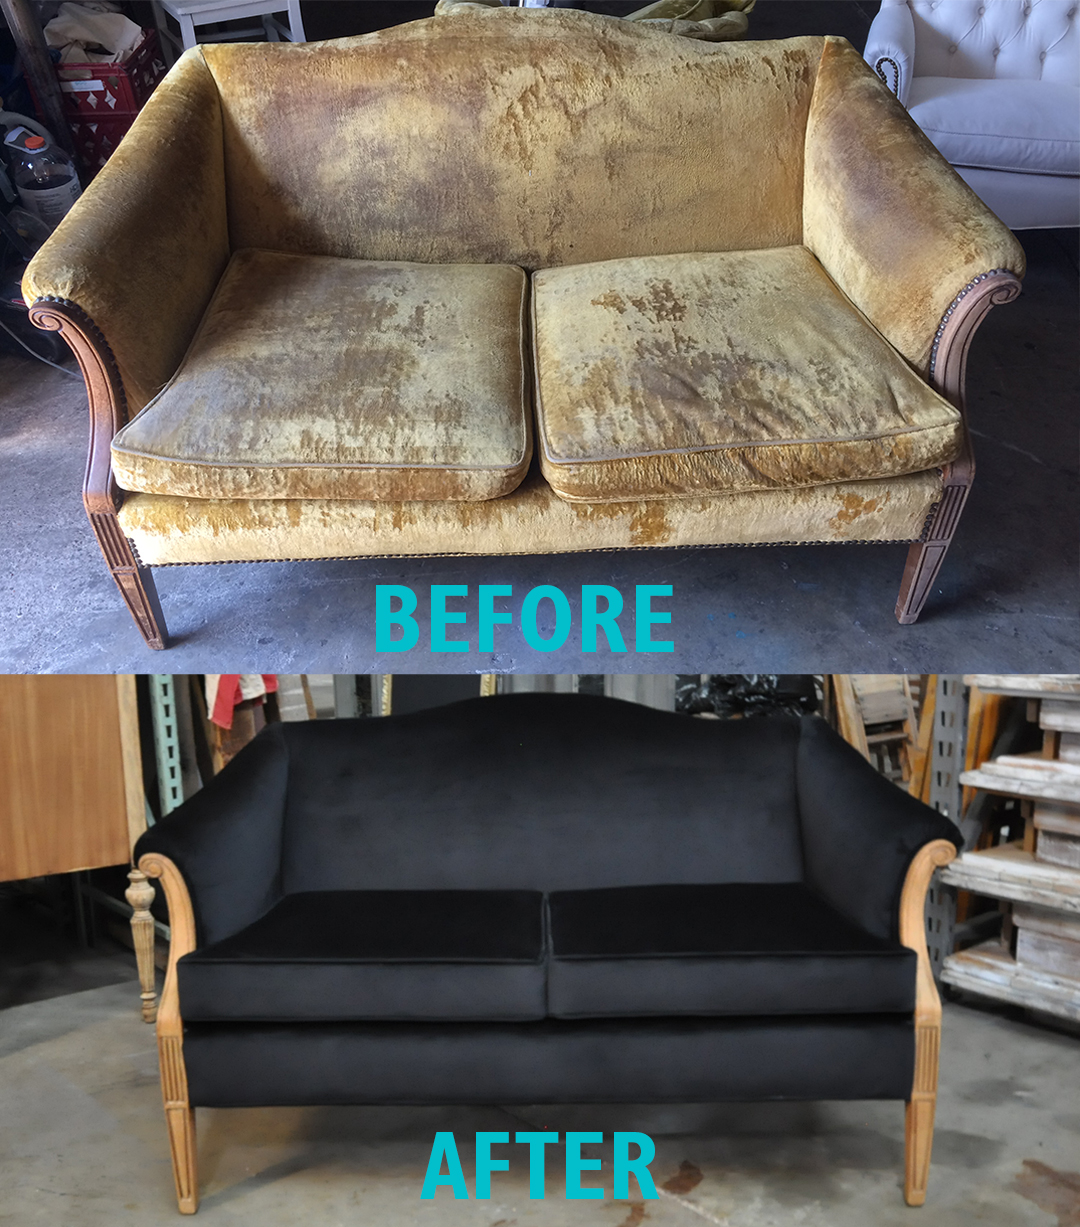 Are You In The DC Area And Are Looking For Someone To Put Your Vintage  Furniture And Decor To Good Use Rather Than Sending It To The Curb?